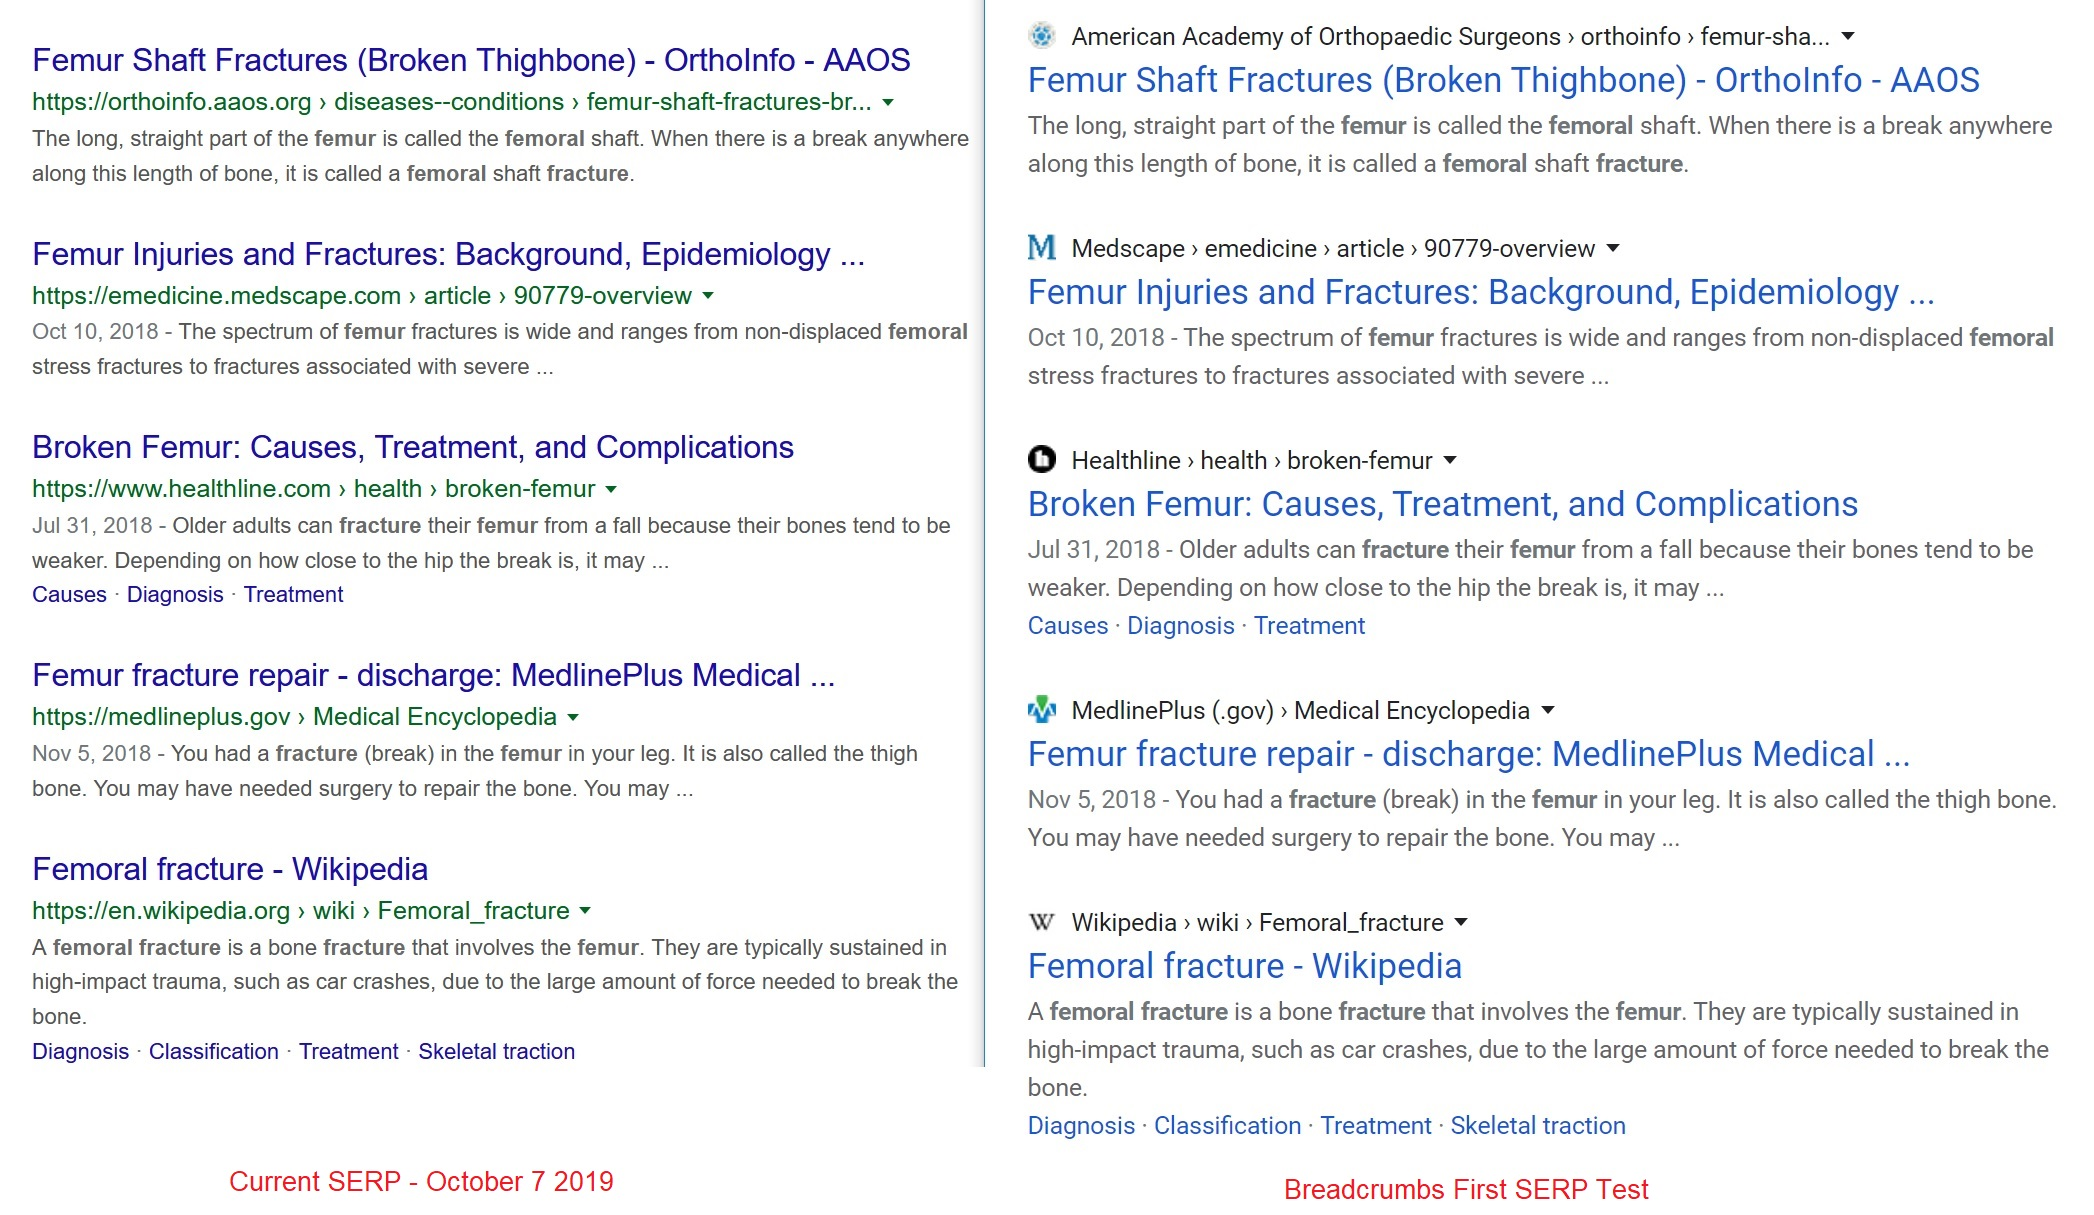 Screenshot of google search result test breadcrumbs-first